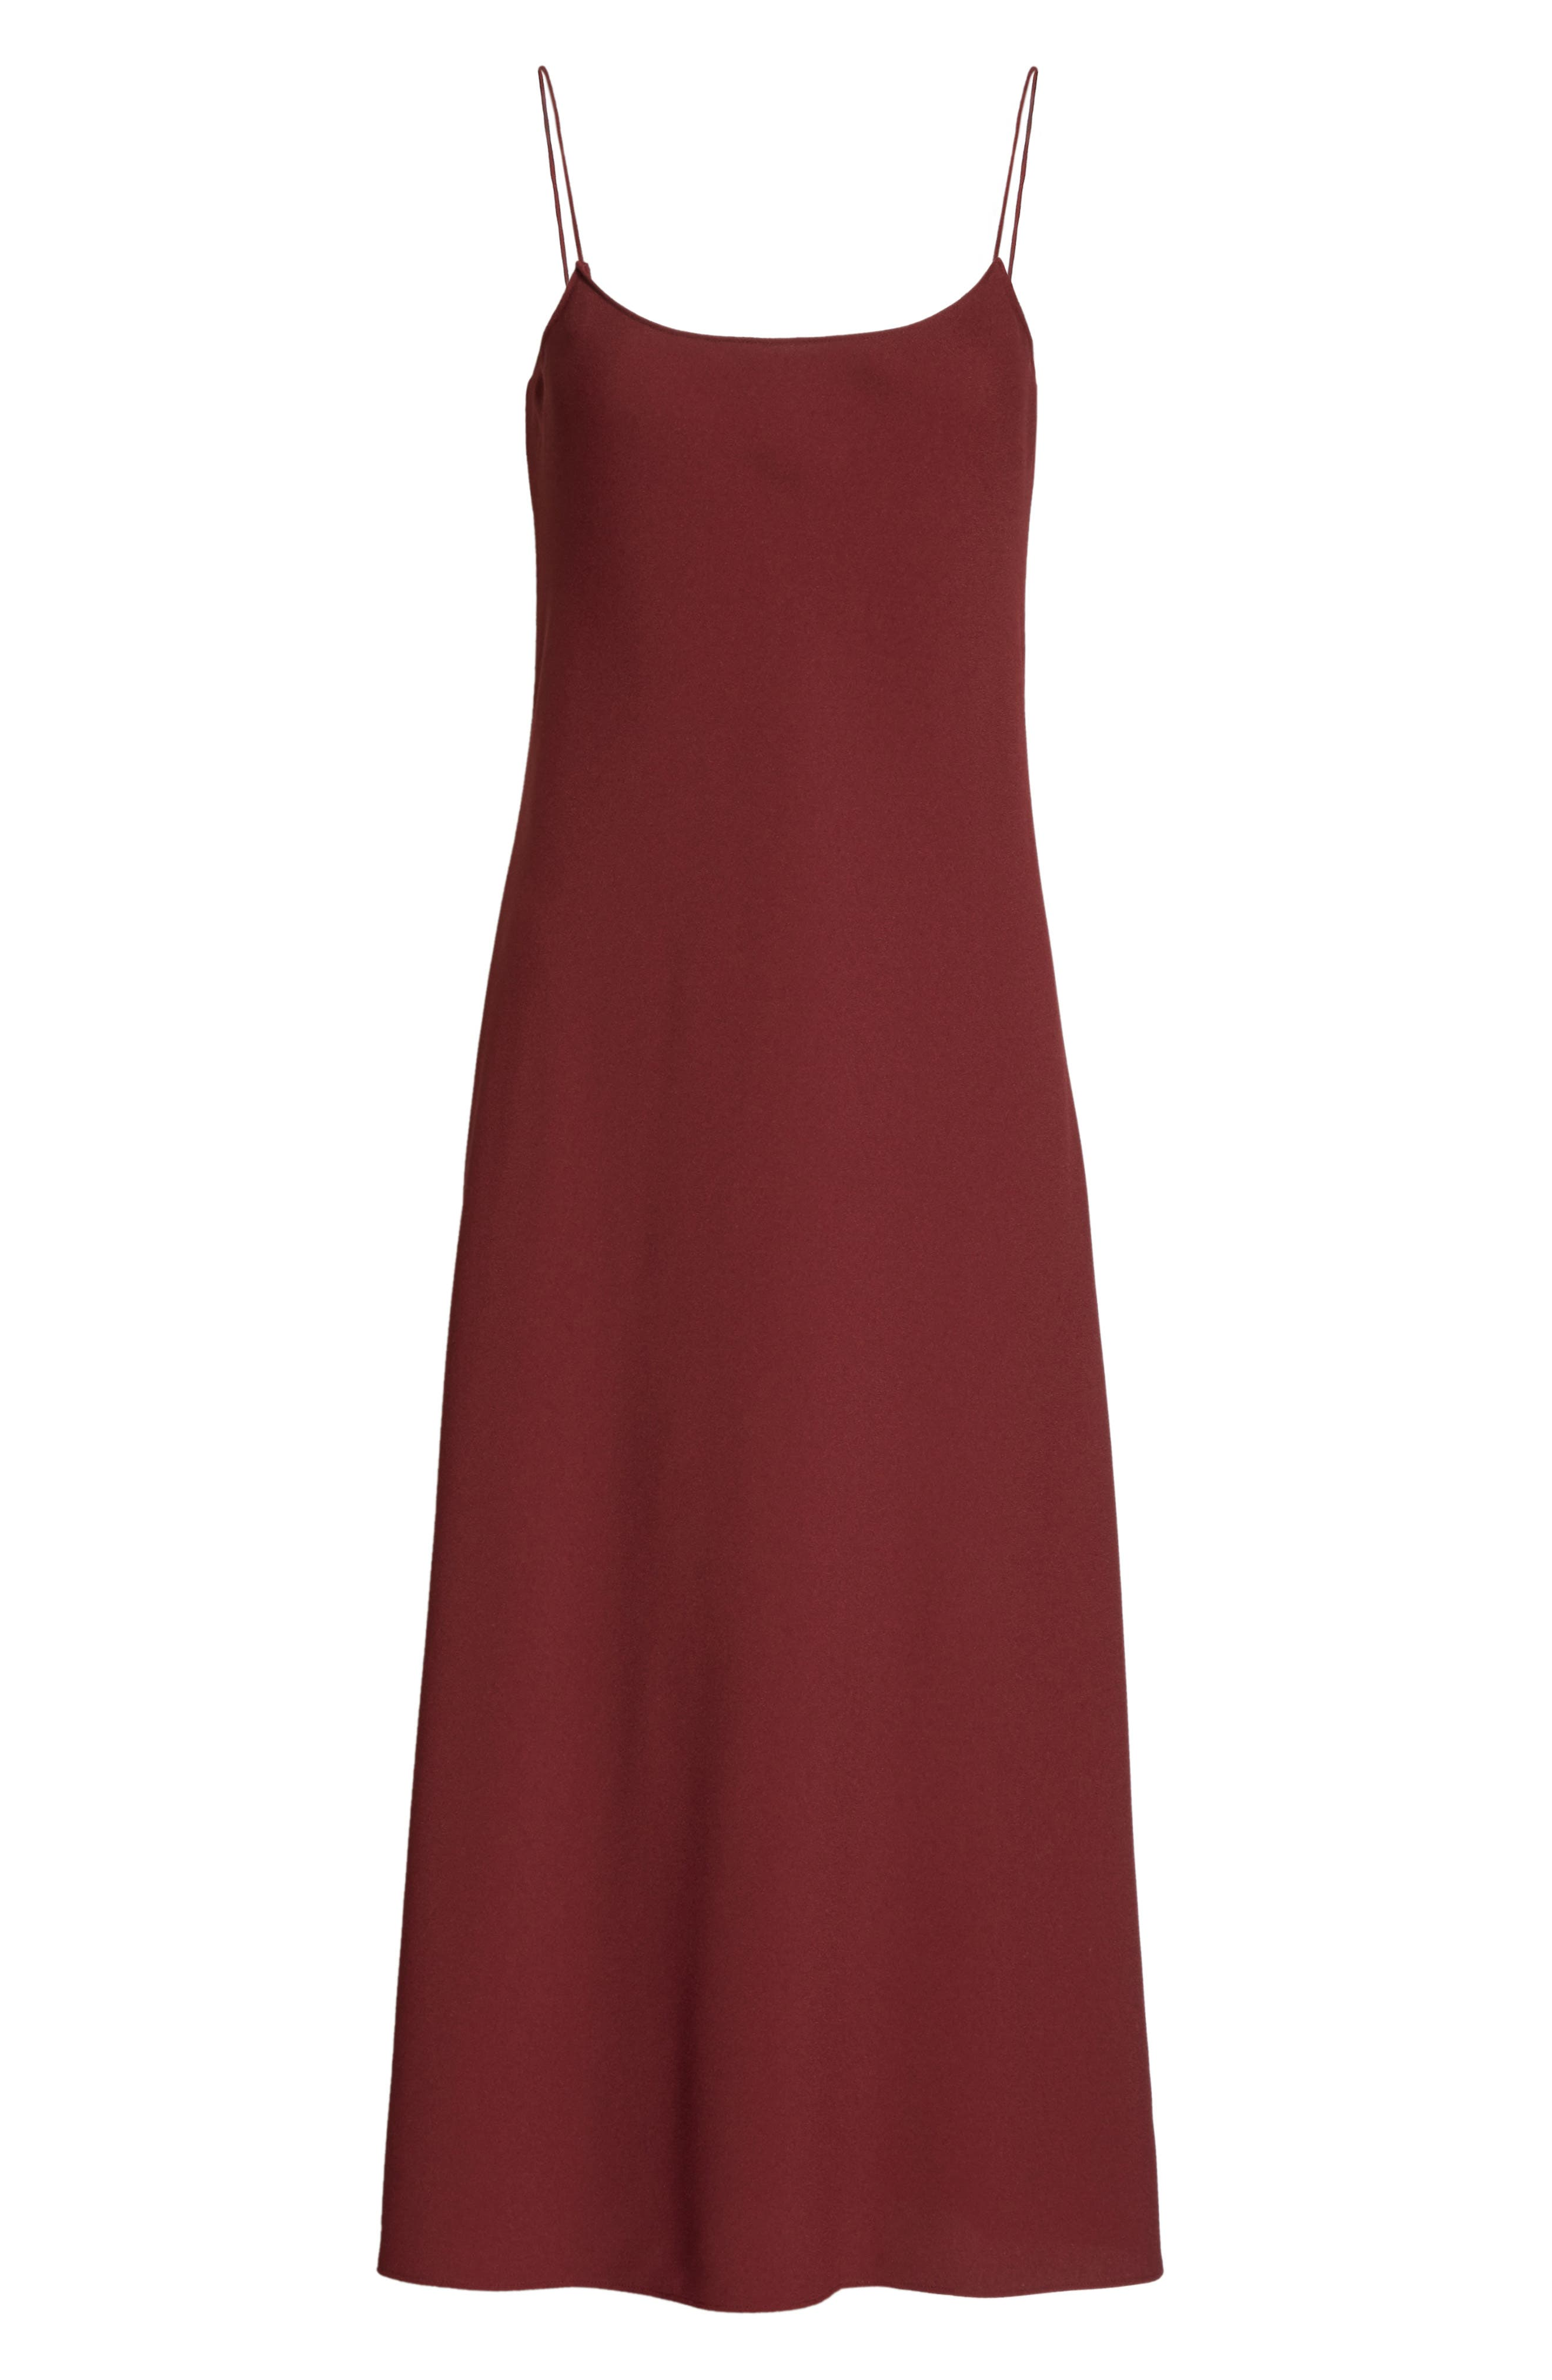 Telson Rosina Crepe Slipdress,                             Alternate thumbnail 7, color,                             Chili Red